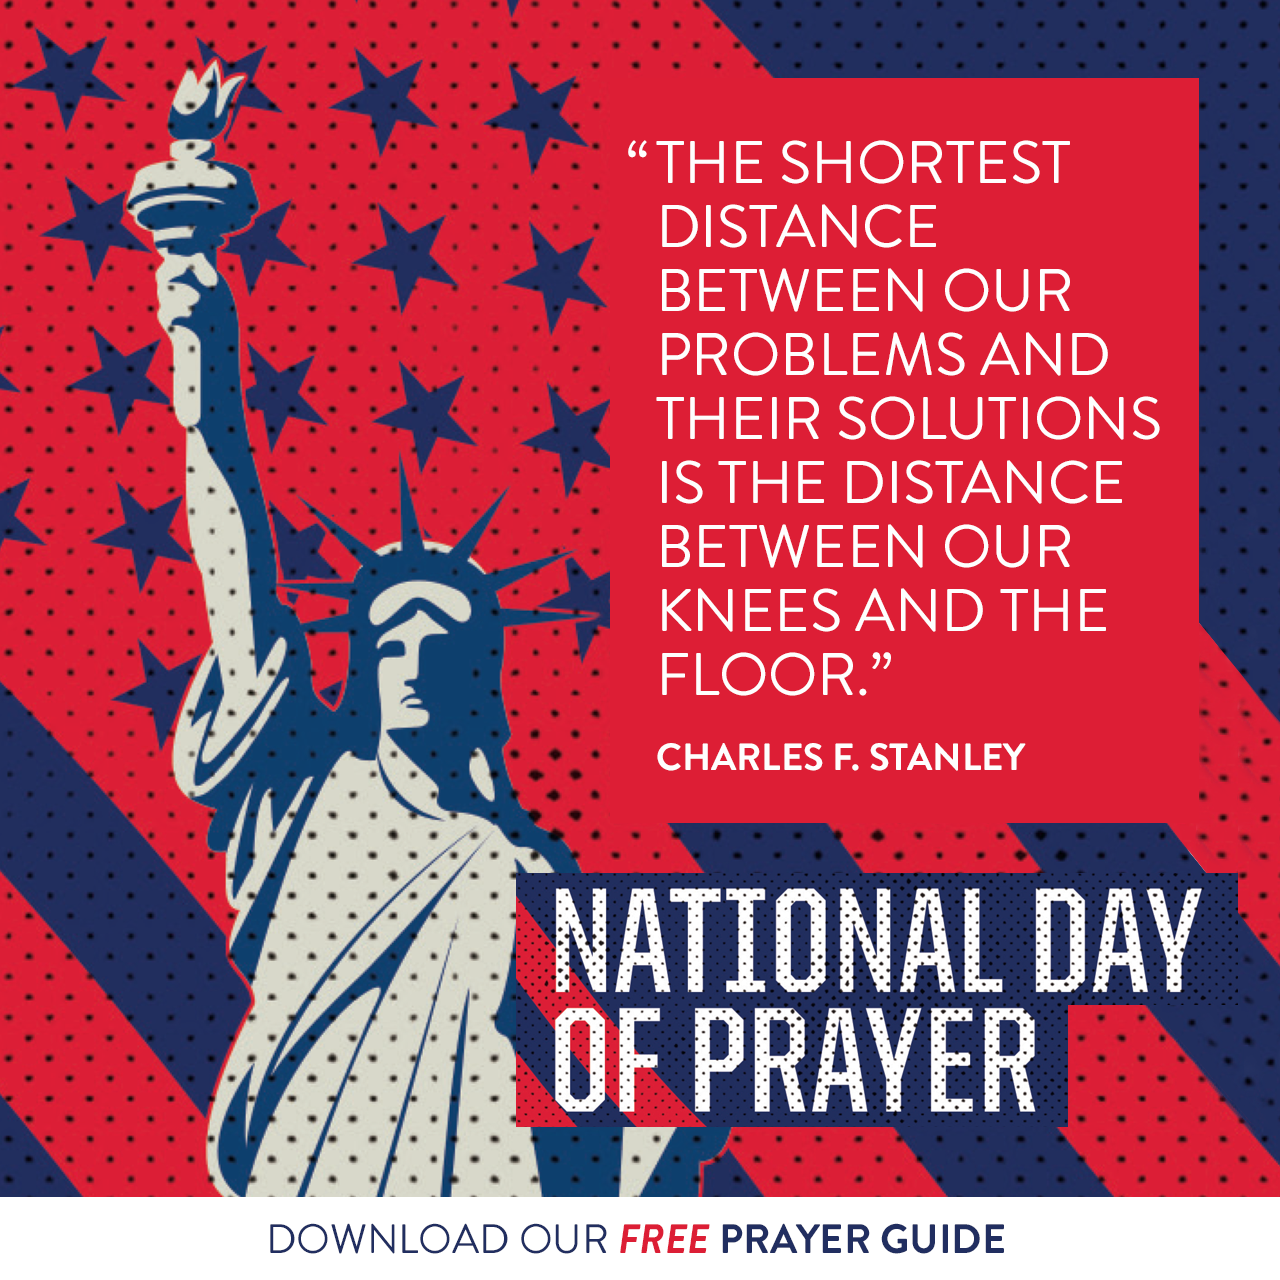 Thursday May 4 Is The National Day Of Prayer Download Our Free Prayer Guide Bit Ly Pray17 National Prayer Day Prayers Pray For America